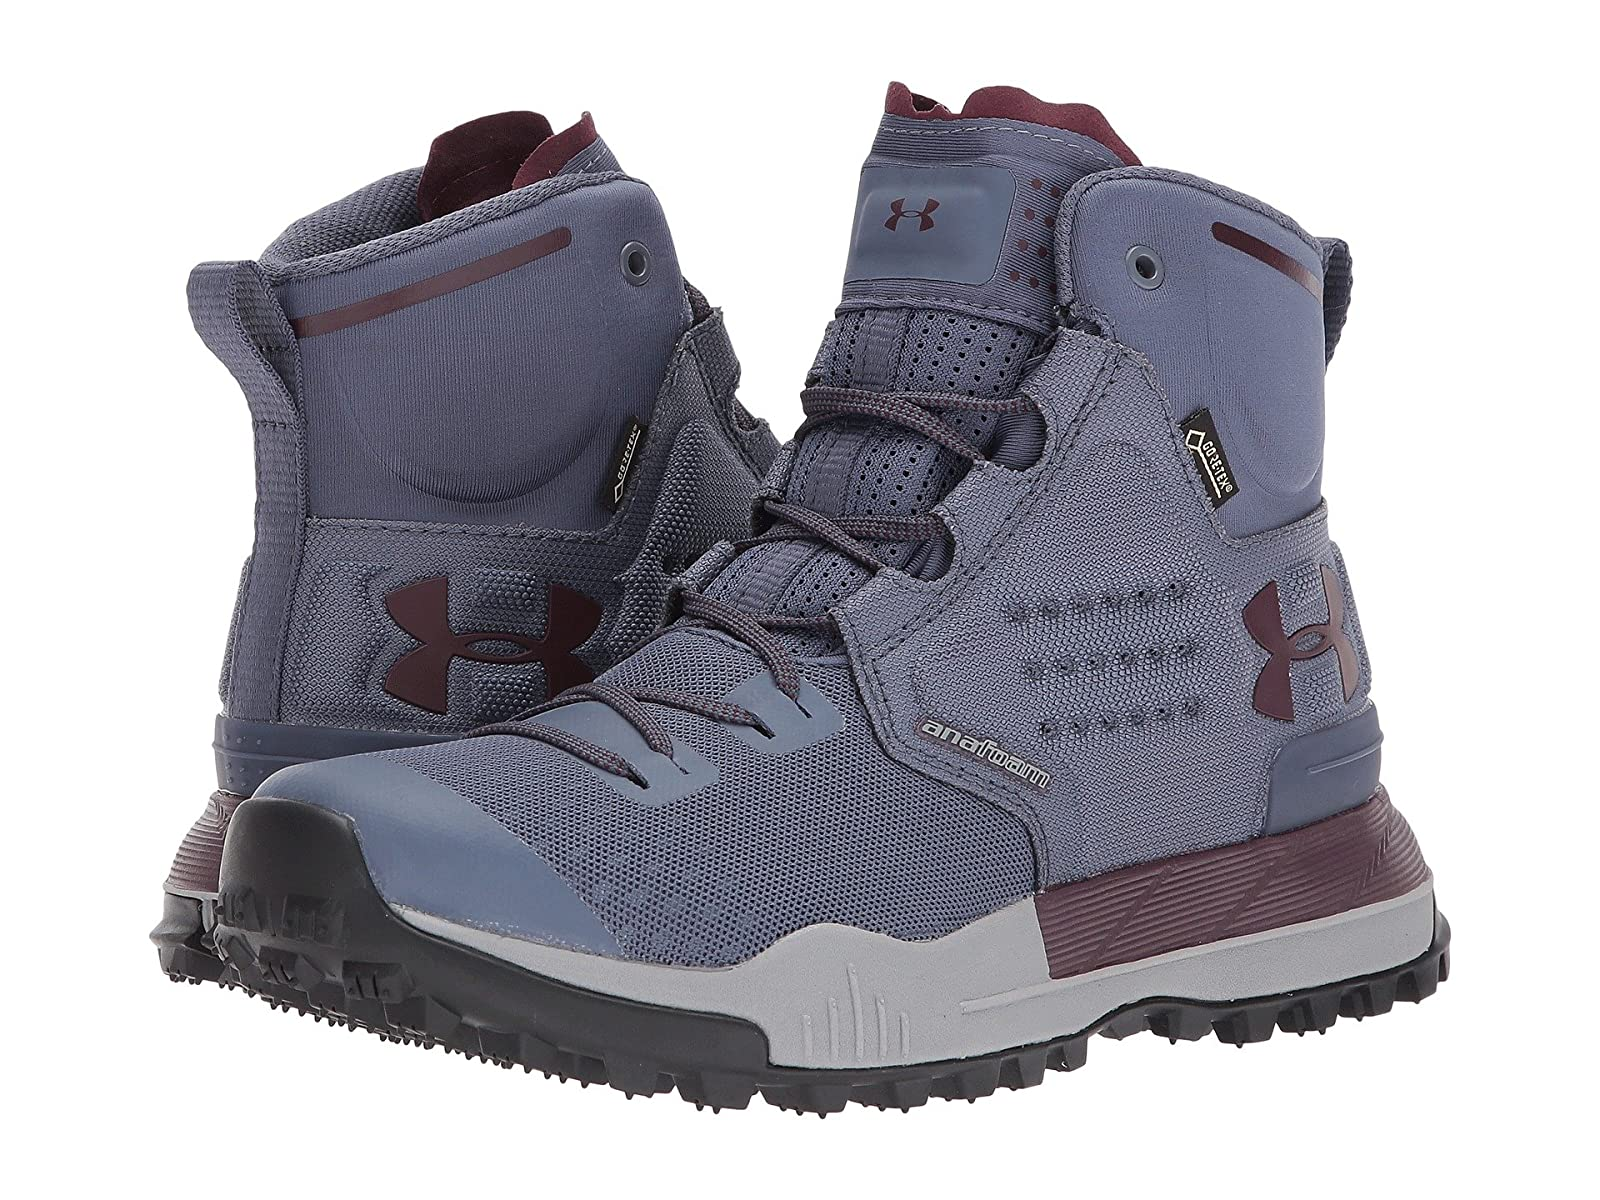 Under Armour UA Newell Ridge Mid GTXCheap and distinctive eye-catching shoes